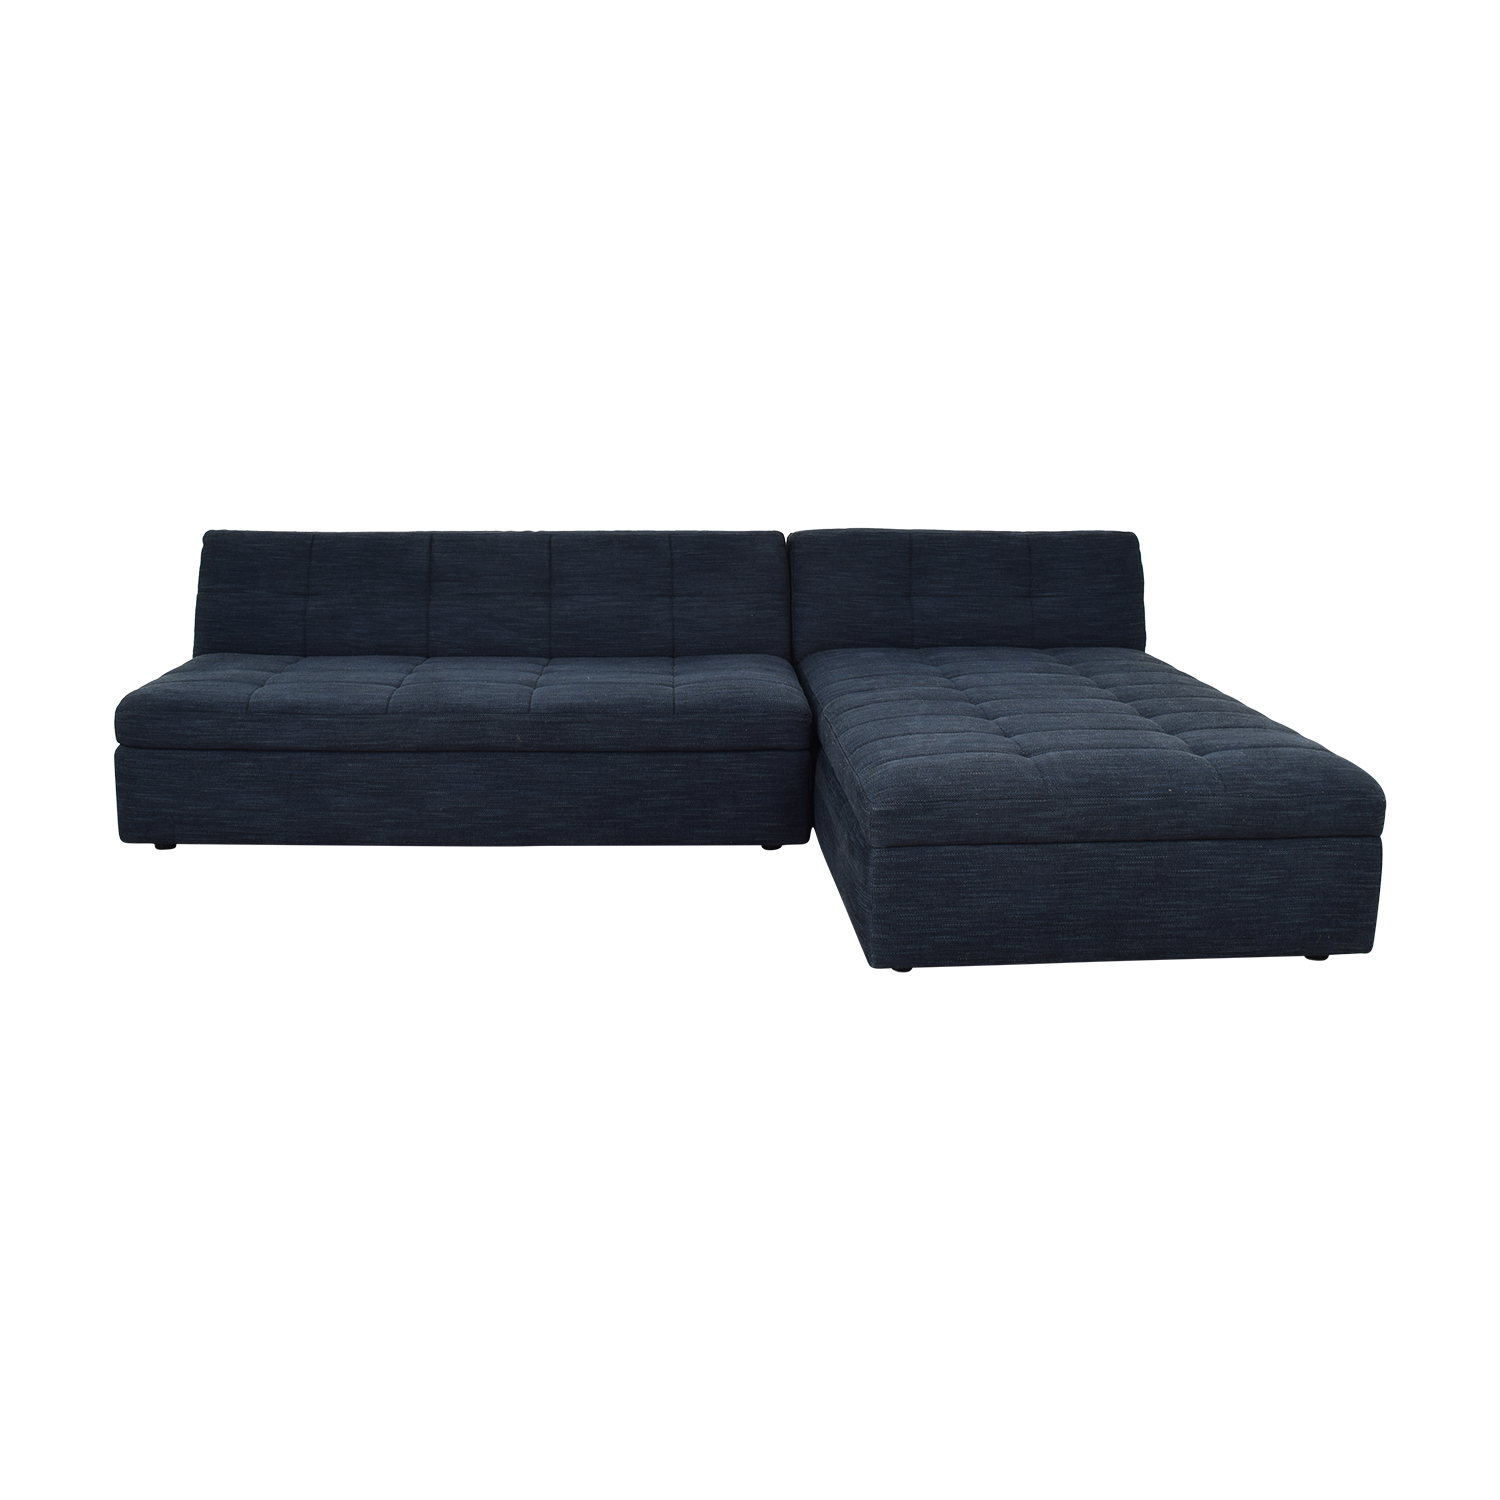 West Elm Plateau Armless Sofa with Storage Chaise sale